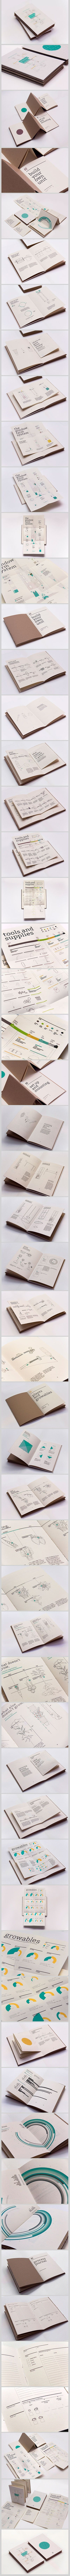 This personal project is inspired by the urban farming movement. The hand bound book acts as a reference guide on the indoor, year round, urban farming method, Window Farming (www.windowfarms.org).  #booklet